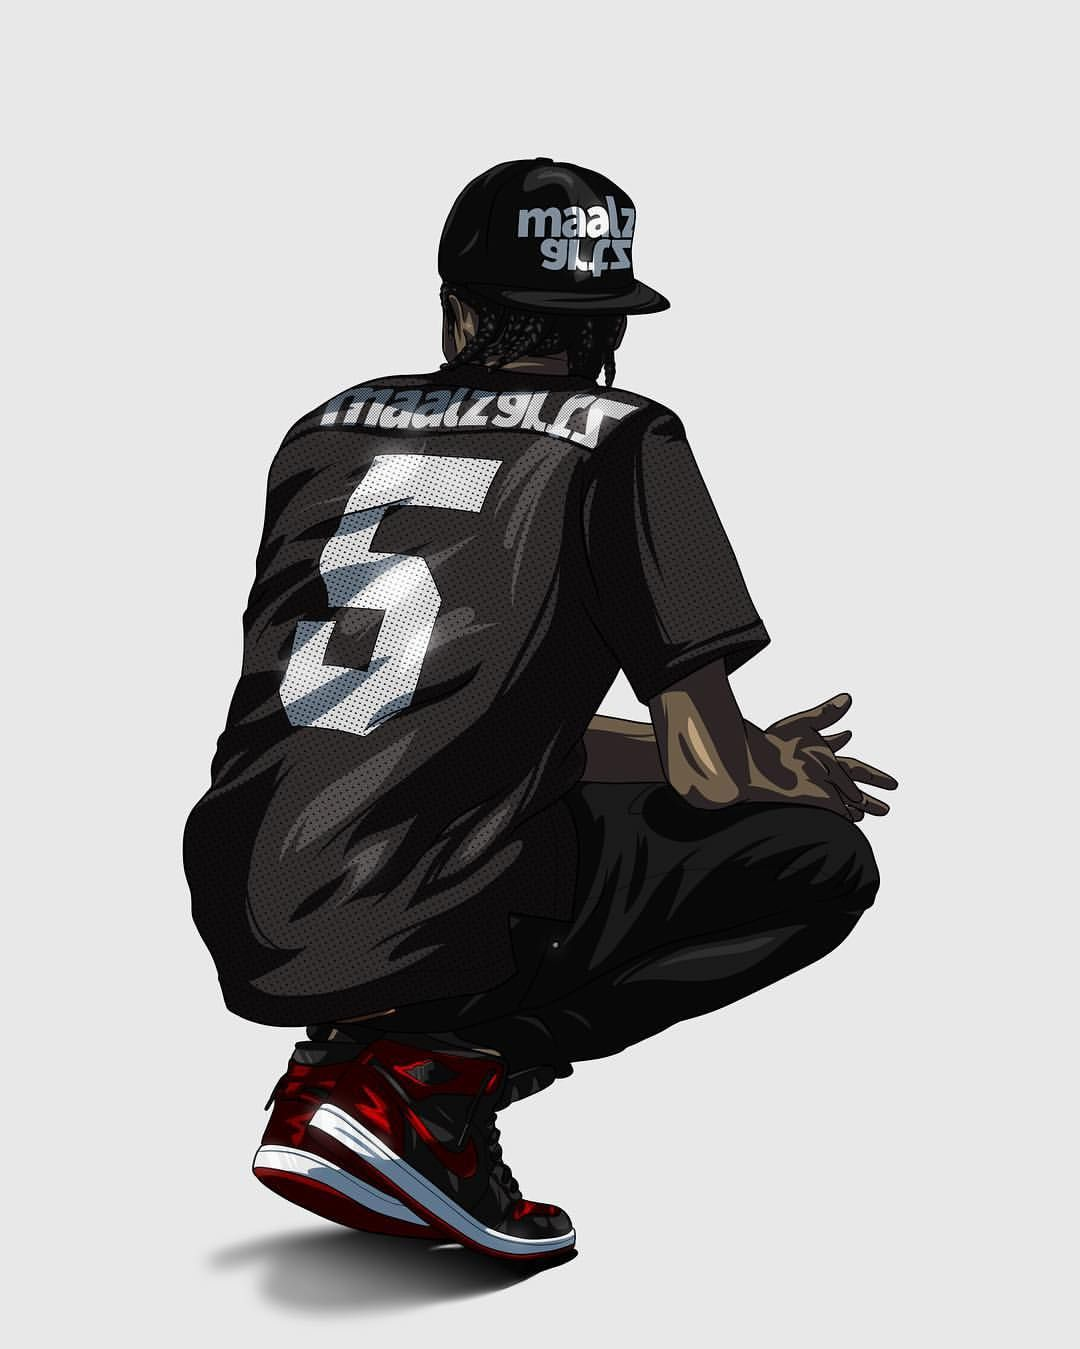 Dope Cartoon Wallpaper Iphone 640x799 Download Hd Wallpaper Wallpapertip